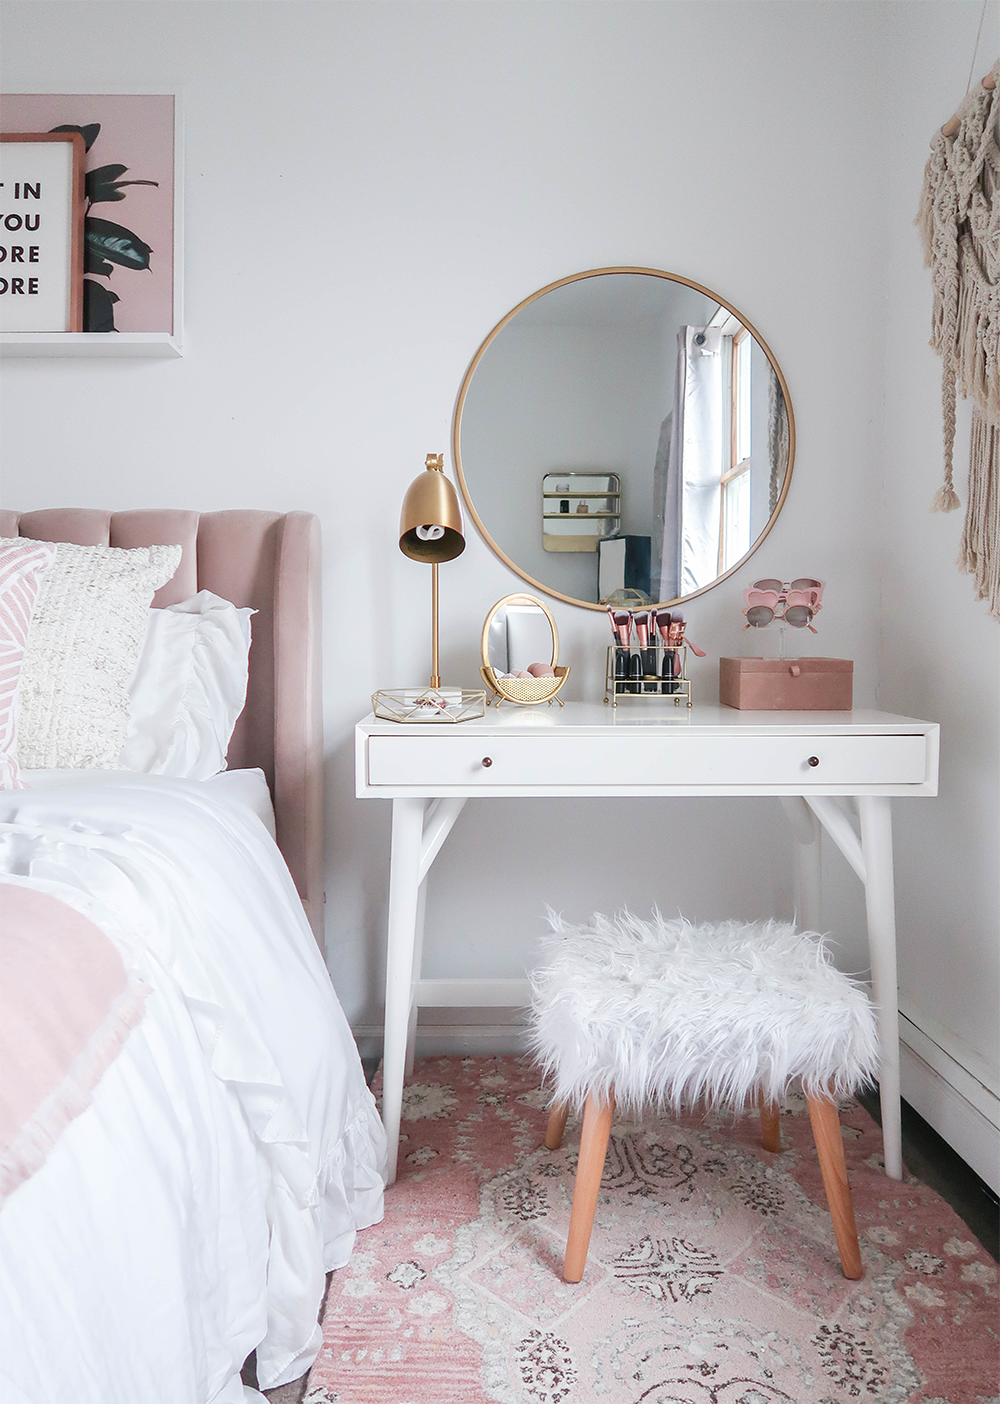 Styling A Vanity In A Small Space Teresa Caruso Small Bedroom Vanity Home Decor Room Inspiration